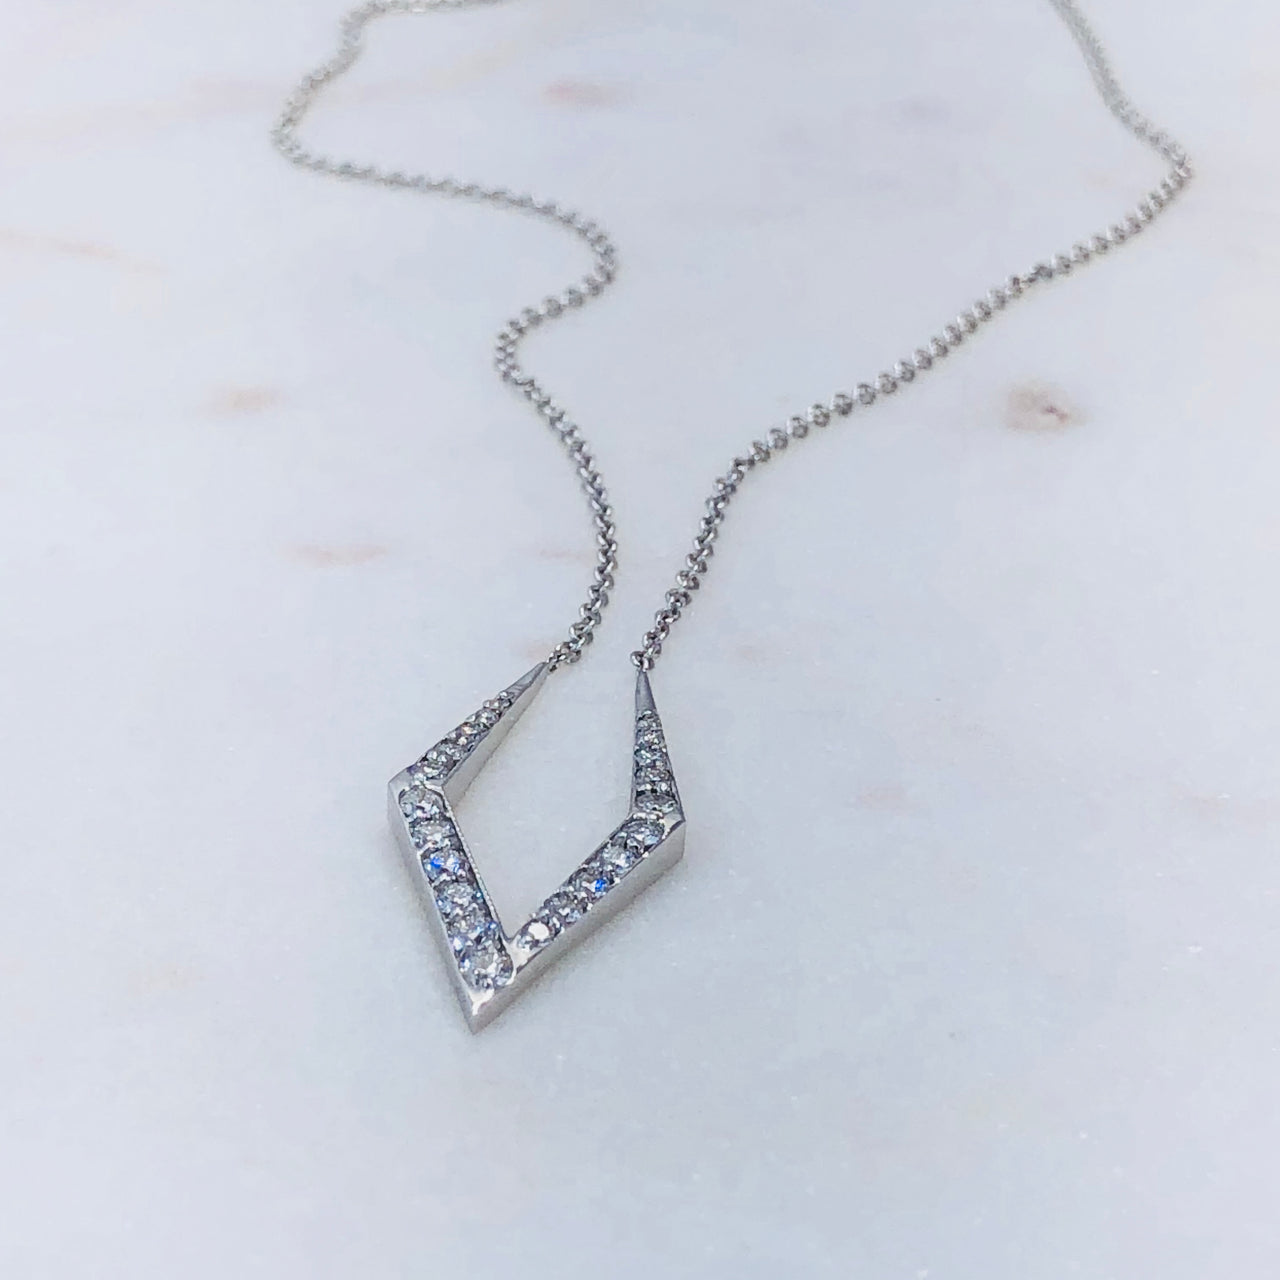 14K White Gold Kite Diamond Necklace.